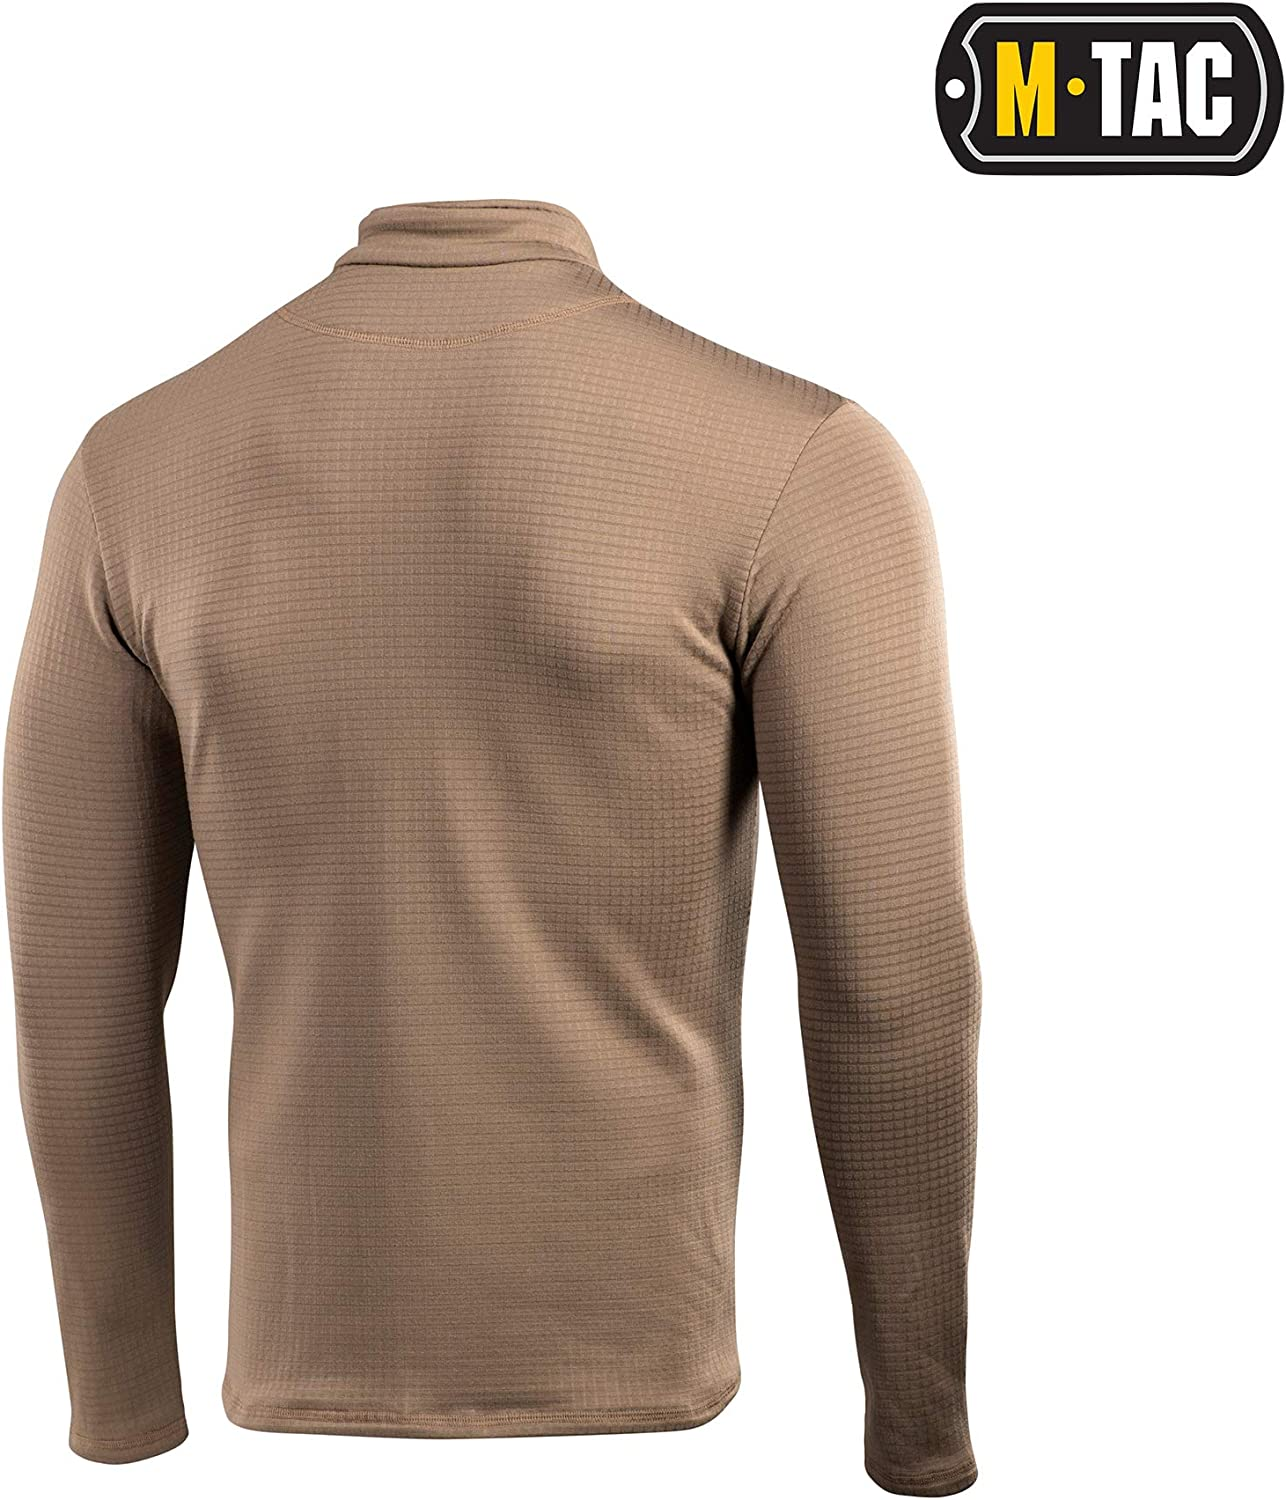 Delta Level 2 Mens Top Thermal Underwear for Men Fleece Lined Compression Shirt